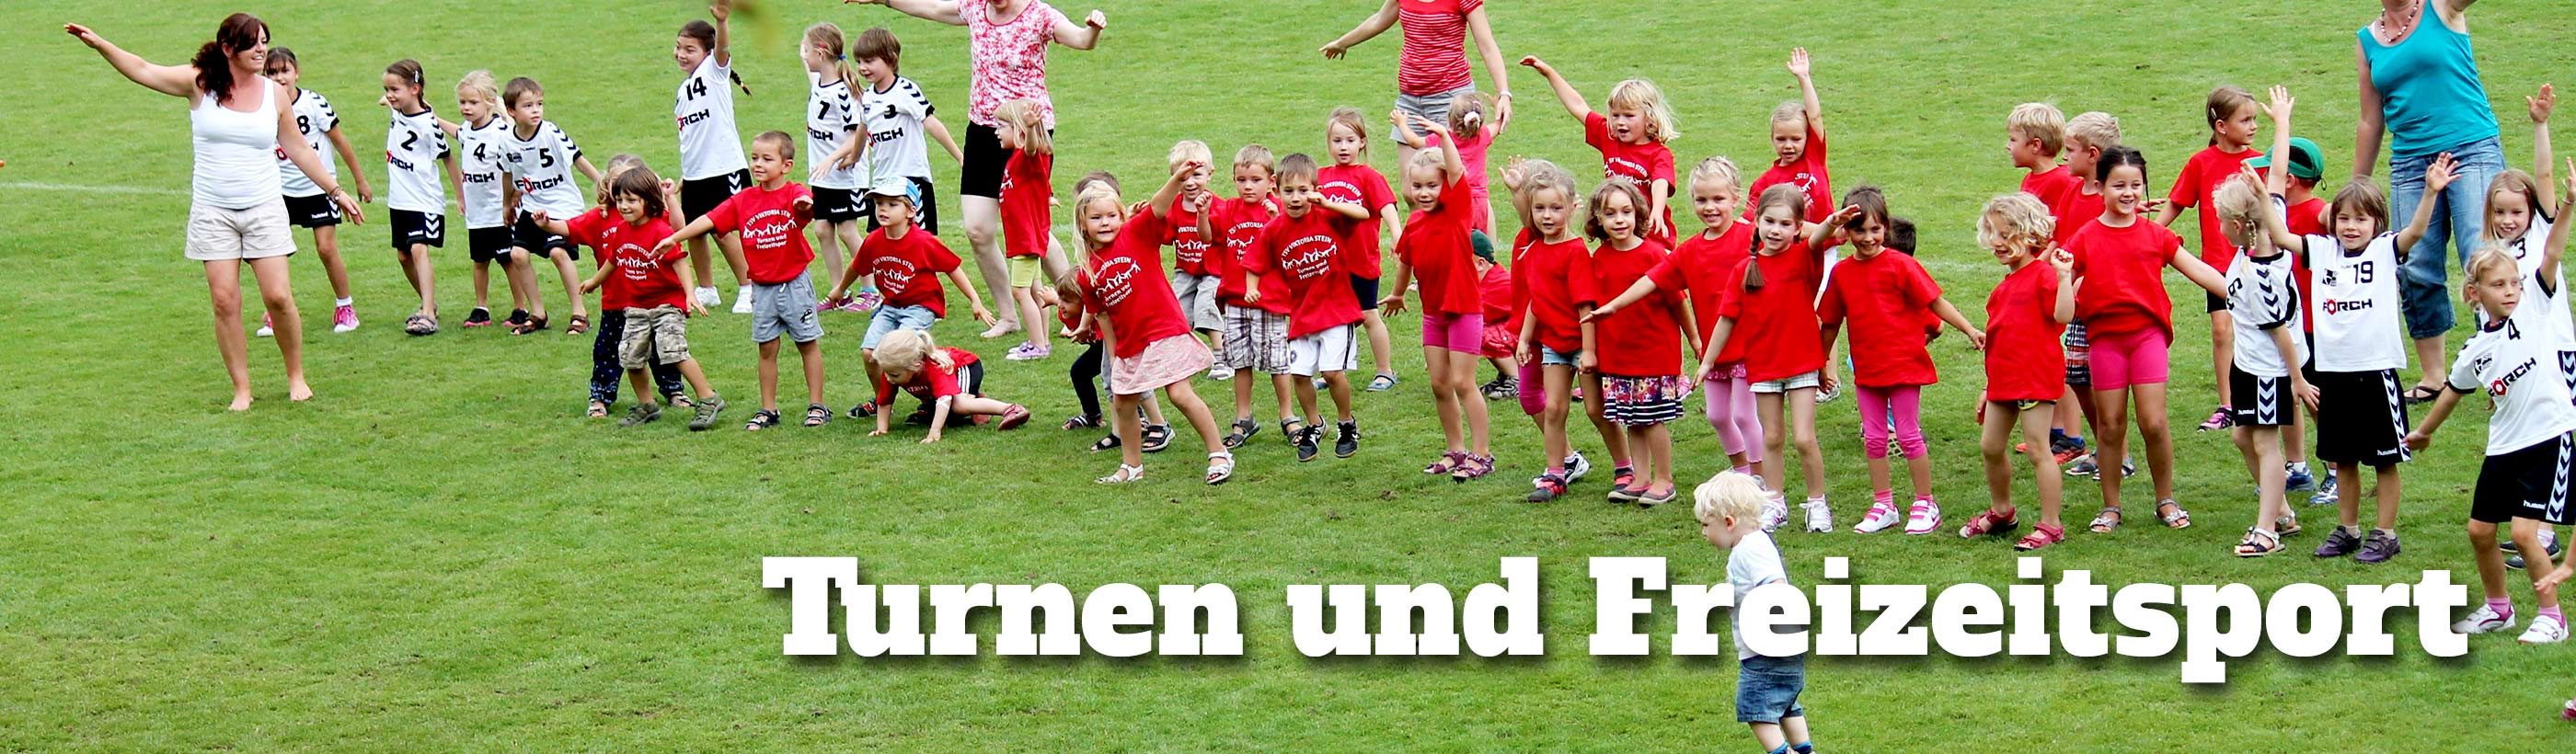 header_turnen